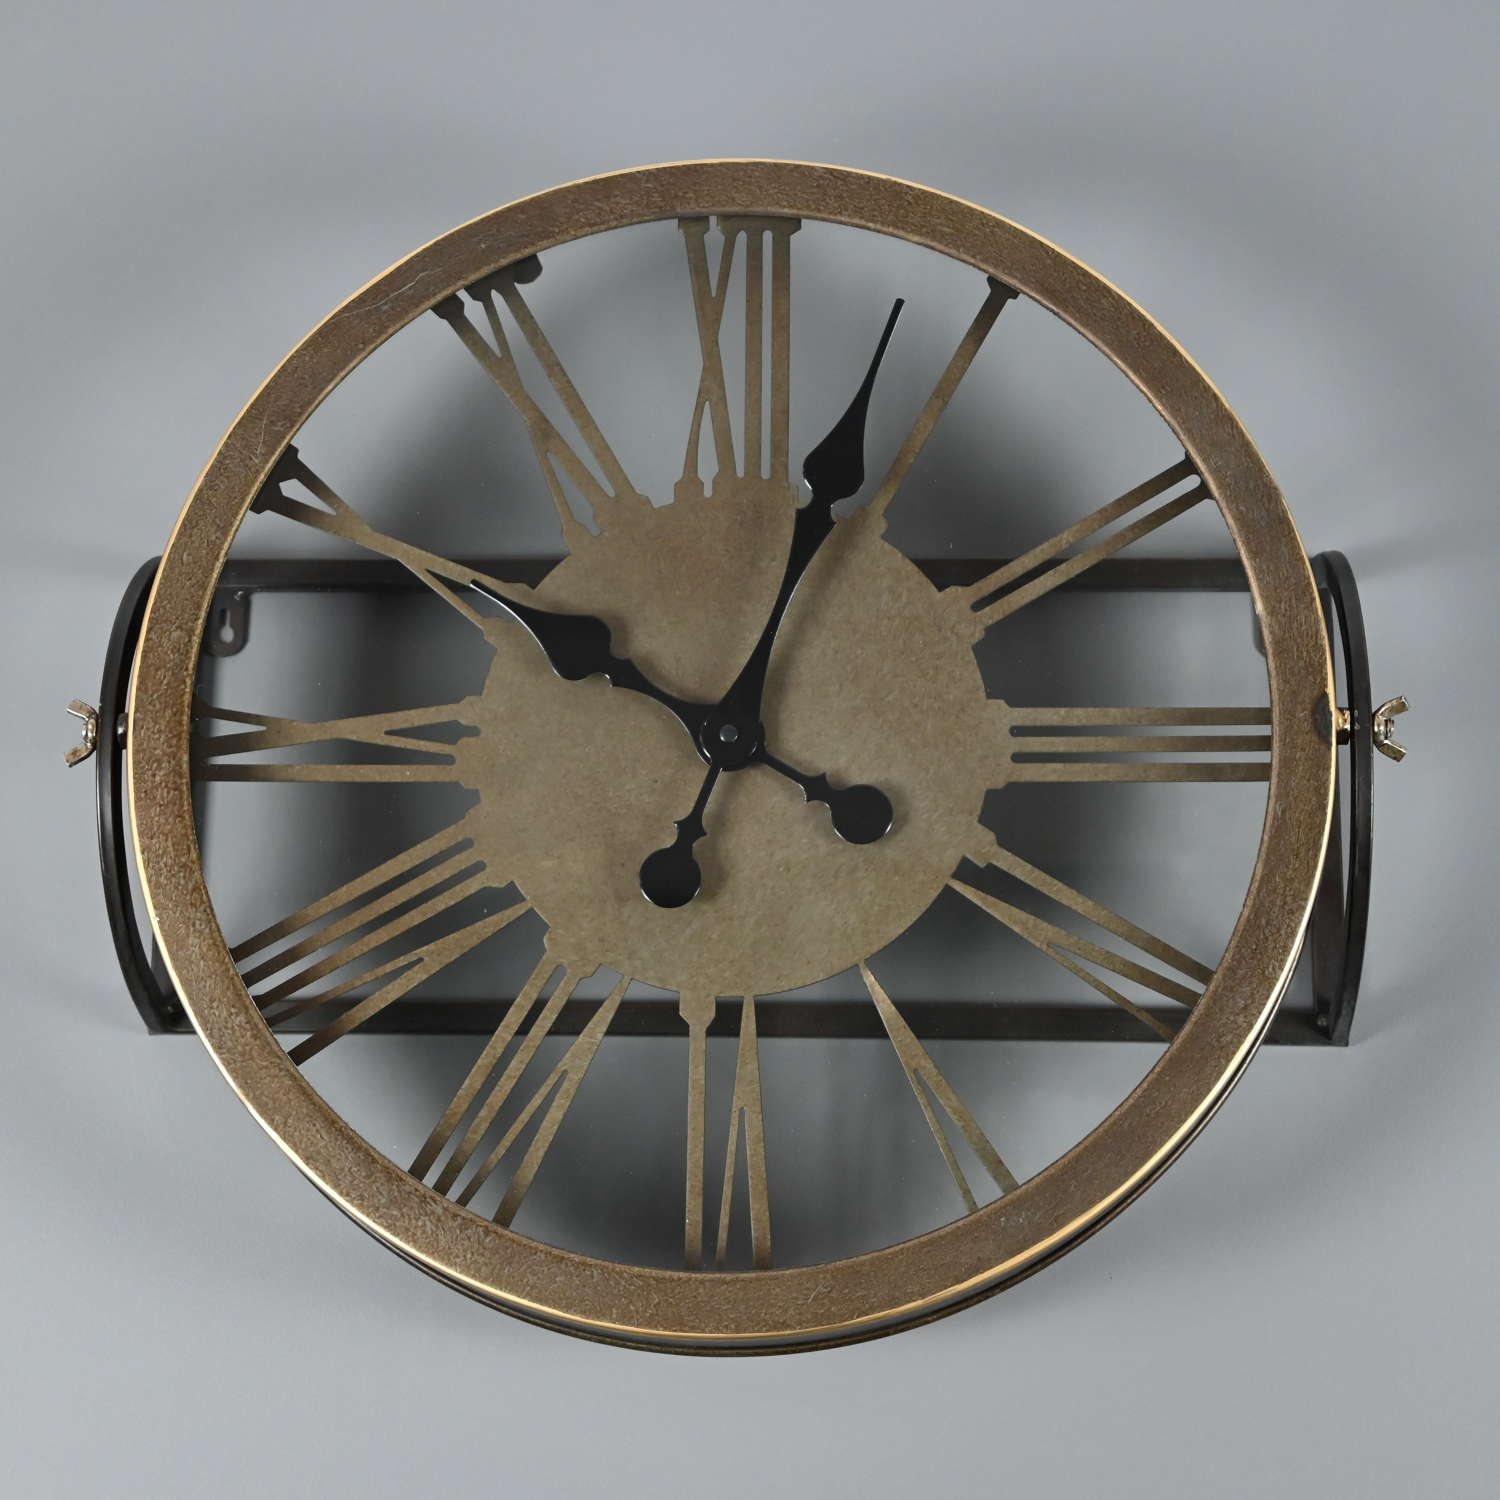 Round metal wall mounted clock with a bronze finish